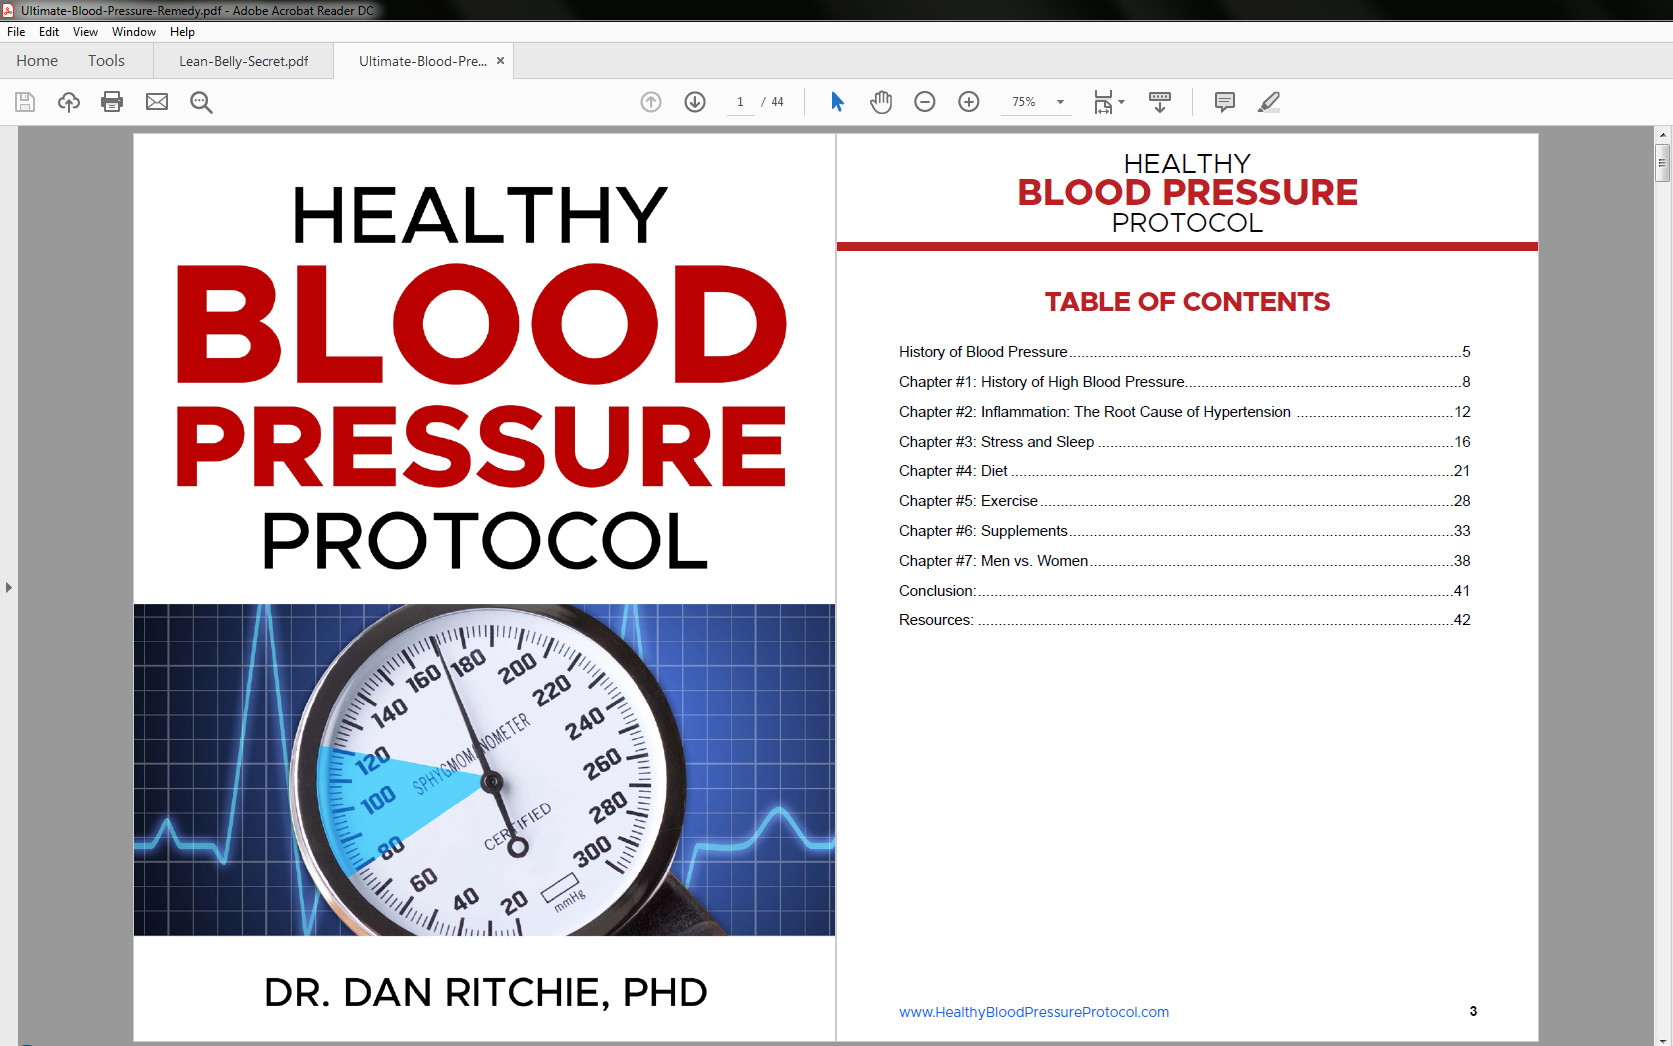 Healthy Blood Pressure Protocol Table of Contents